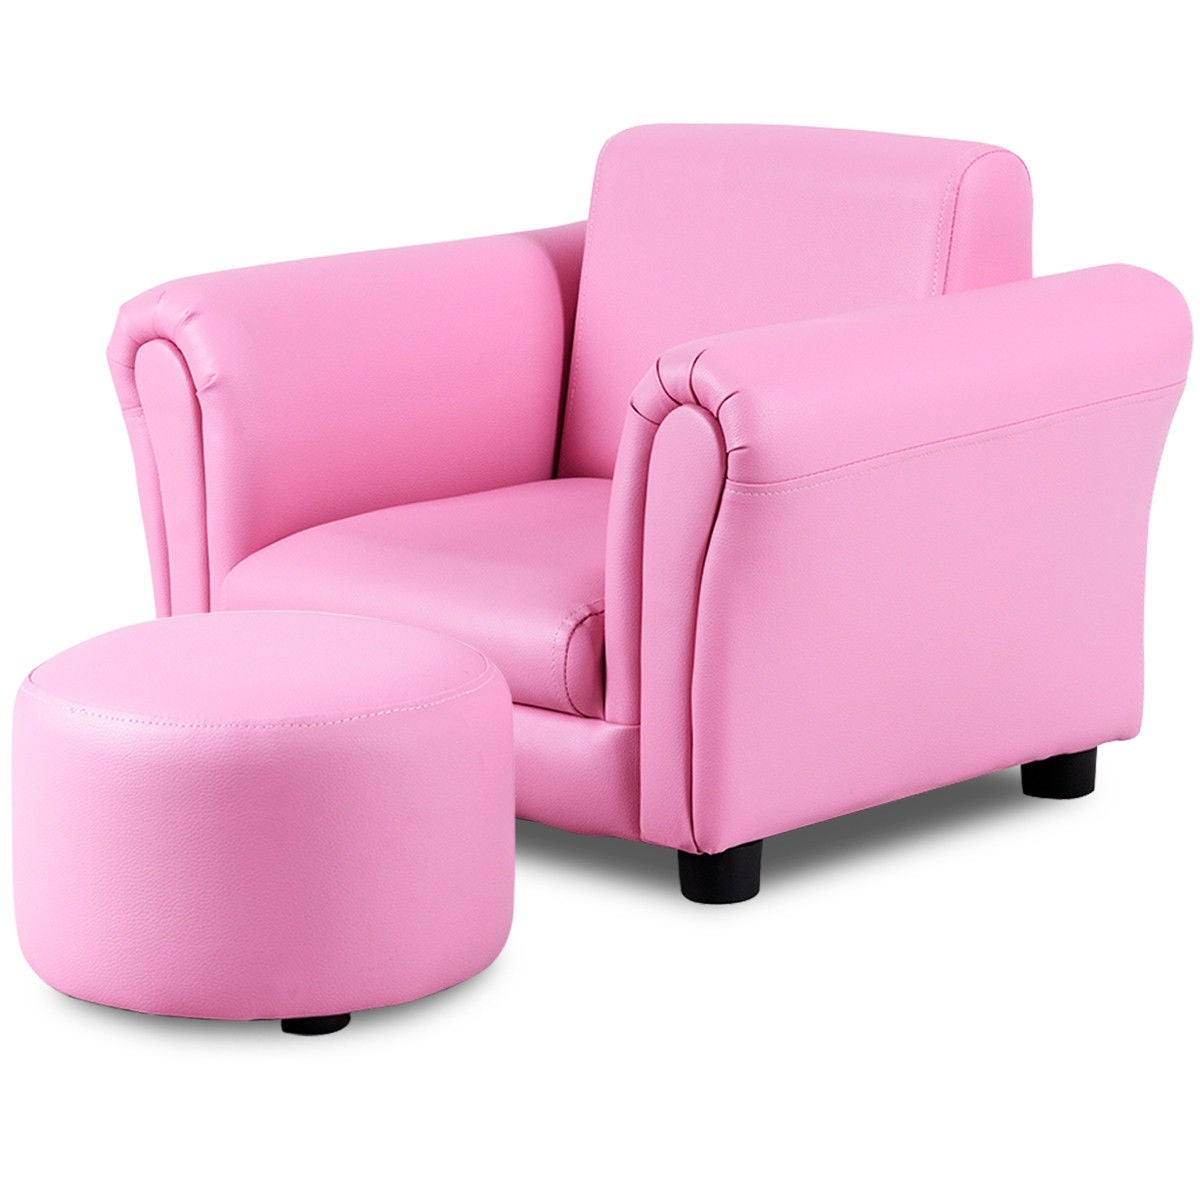 Incredible Costway Pink Kids Sofa Armrest Chair Couch Children Toddler Birthday Gift W Ottoman Caraccident5 Cool Chair Designs And Ideas Caraccident5Info